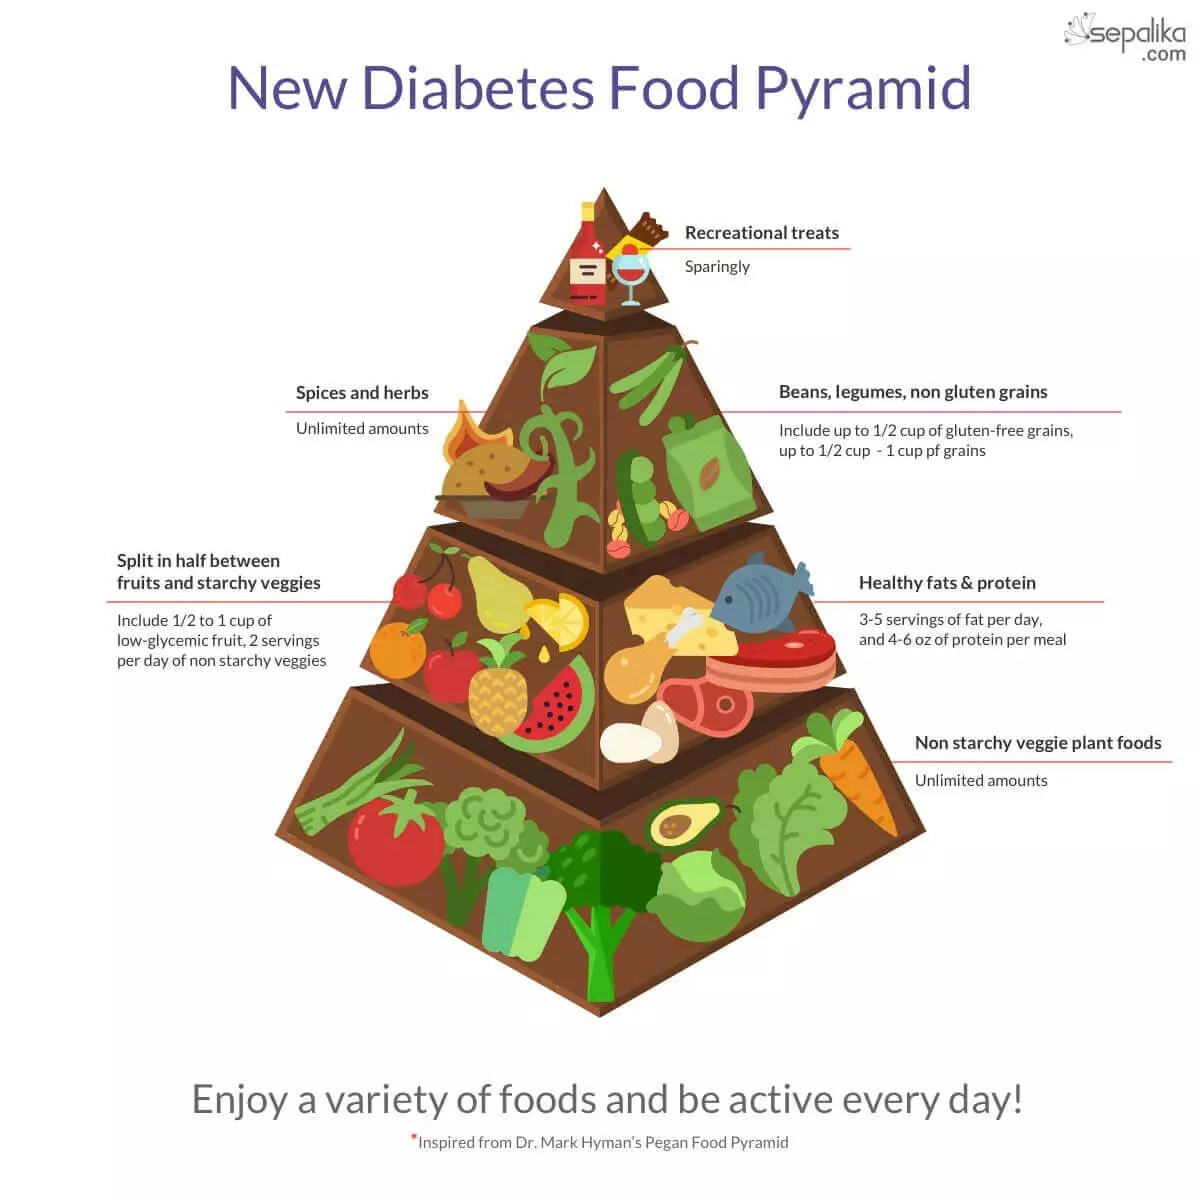 new food pyramid diagram mazda 323 wiring diabetes traditional diet vs lchf